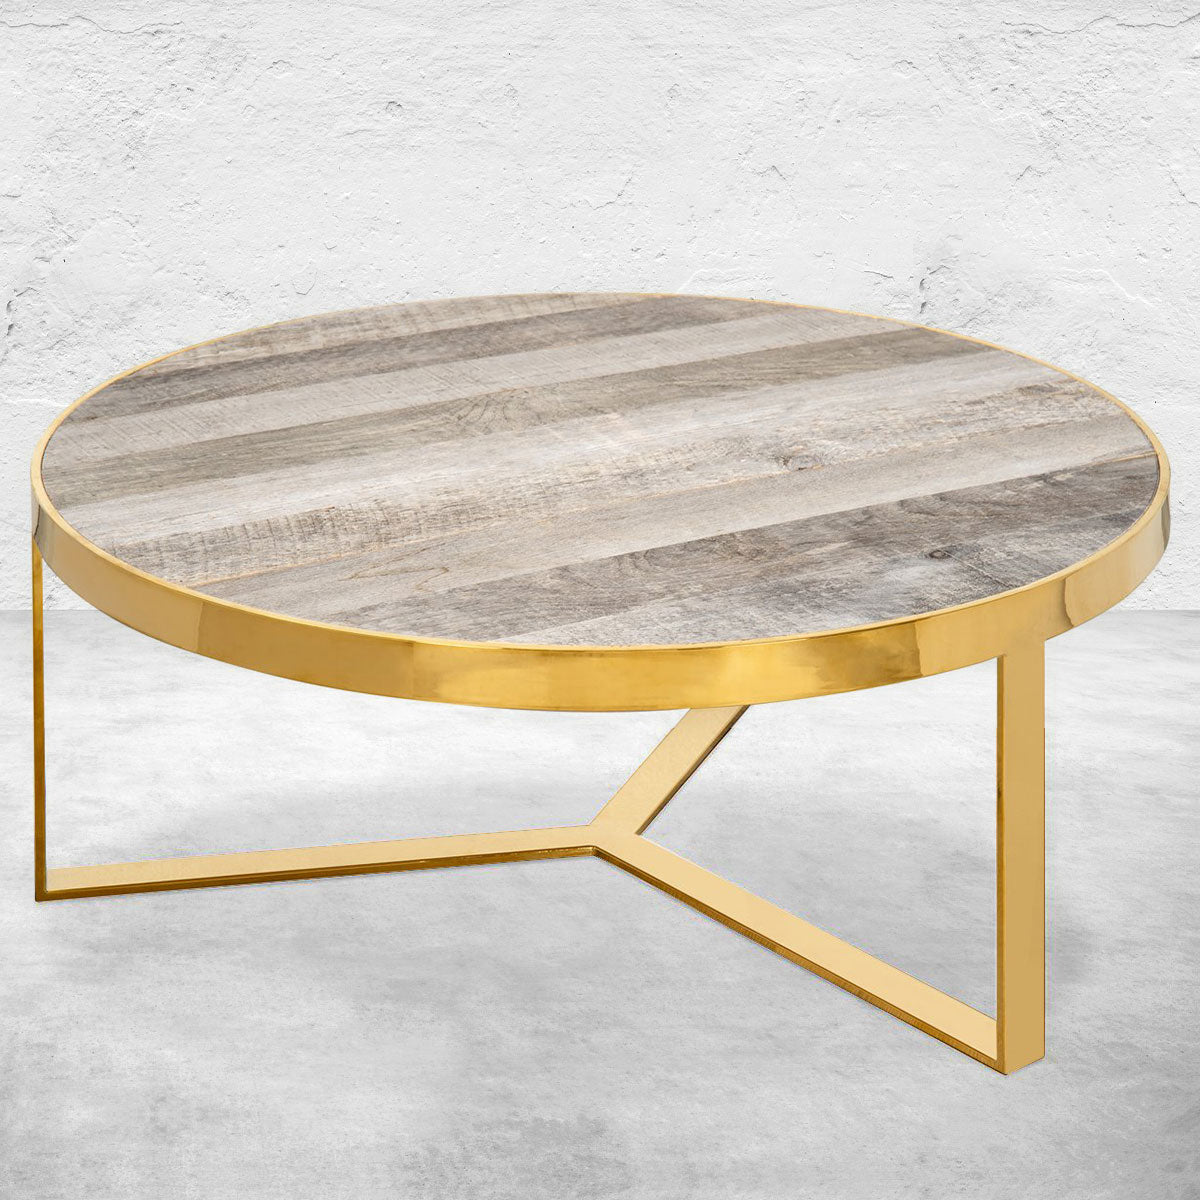 Circular coffee table with three legs, brass frame and weathered wood plank top.